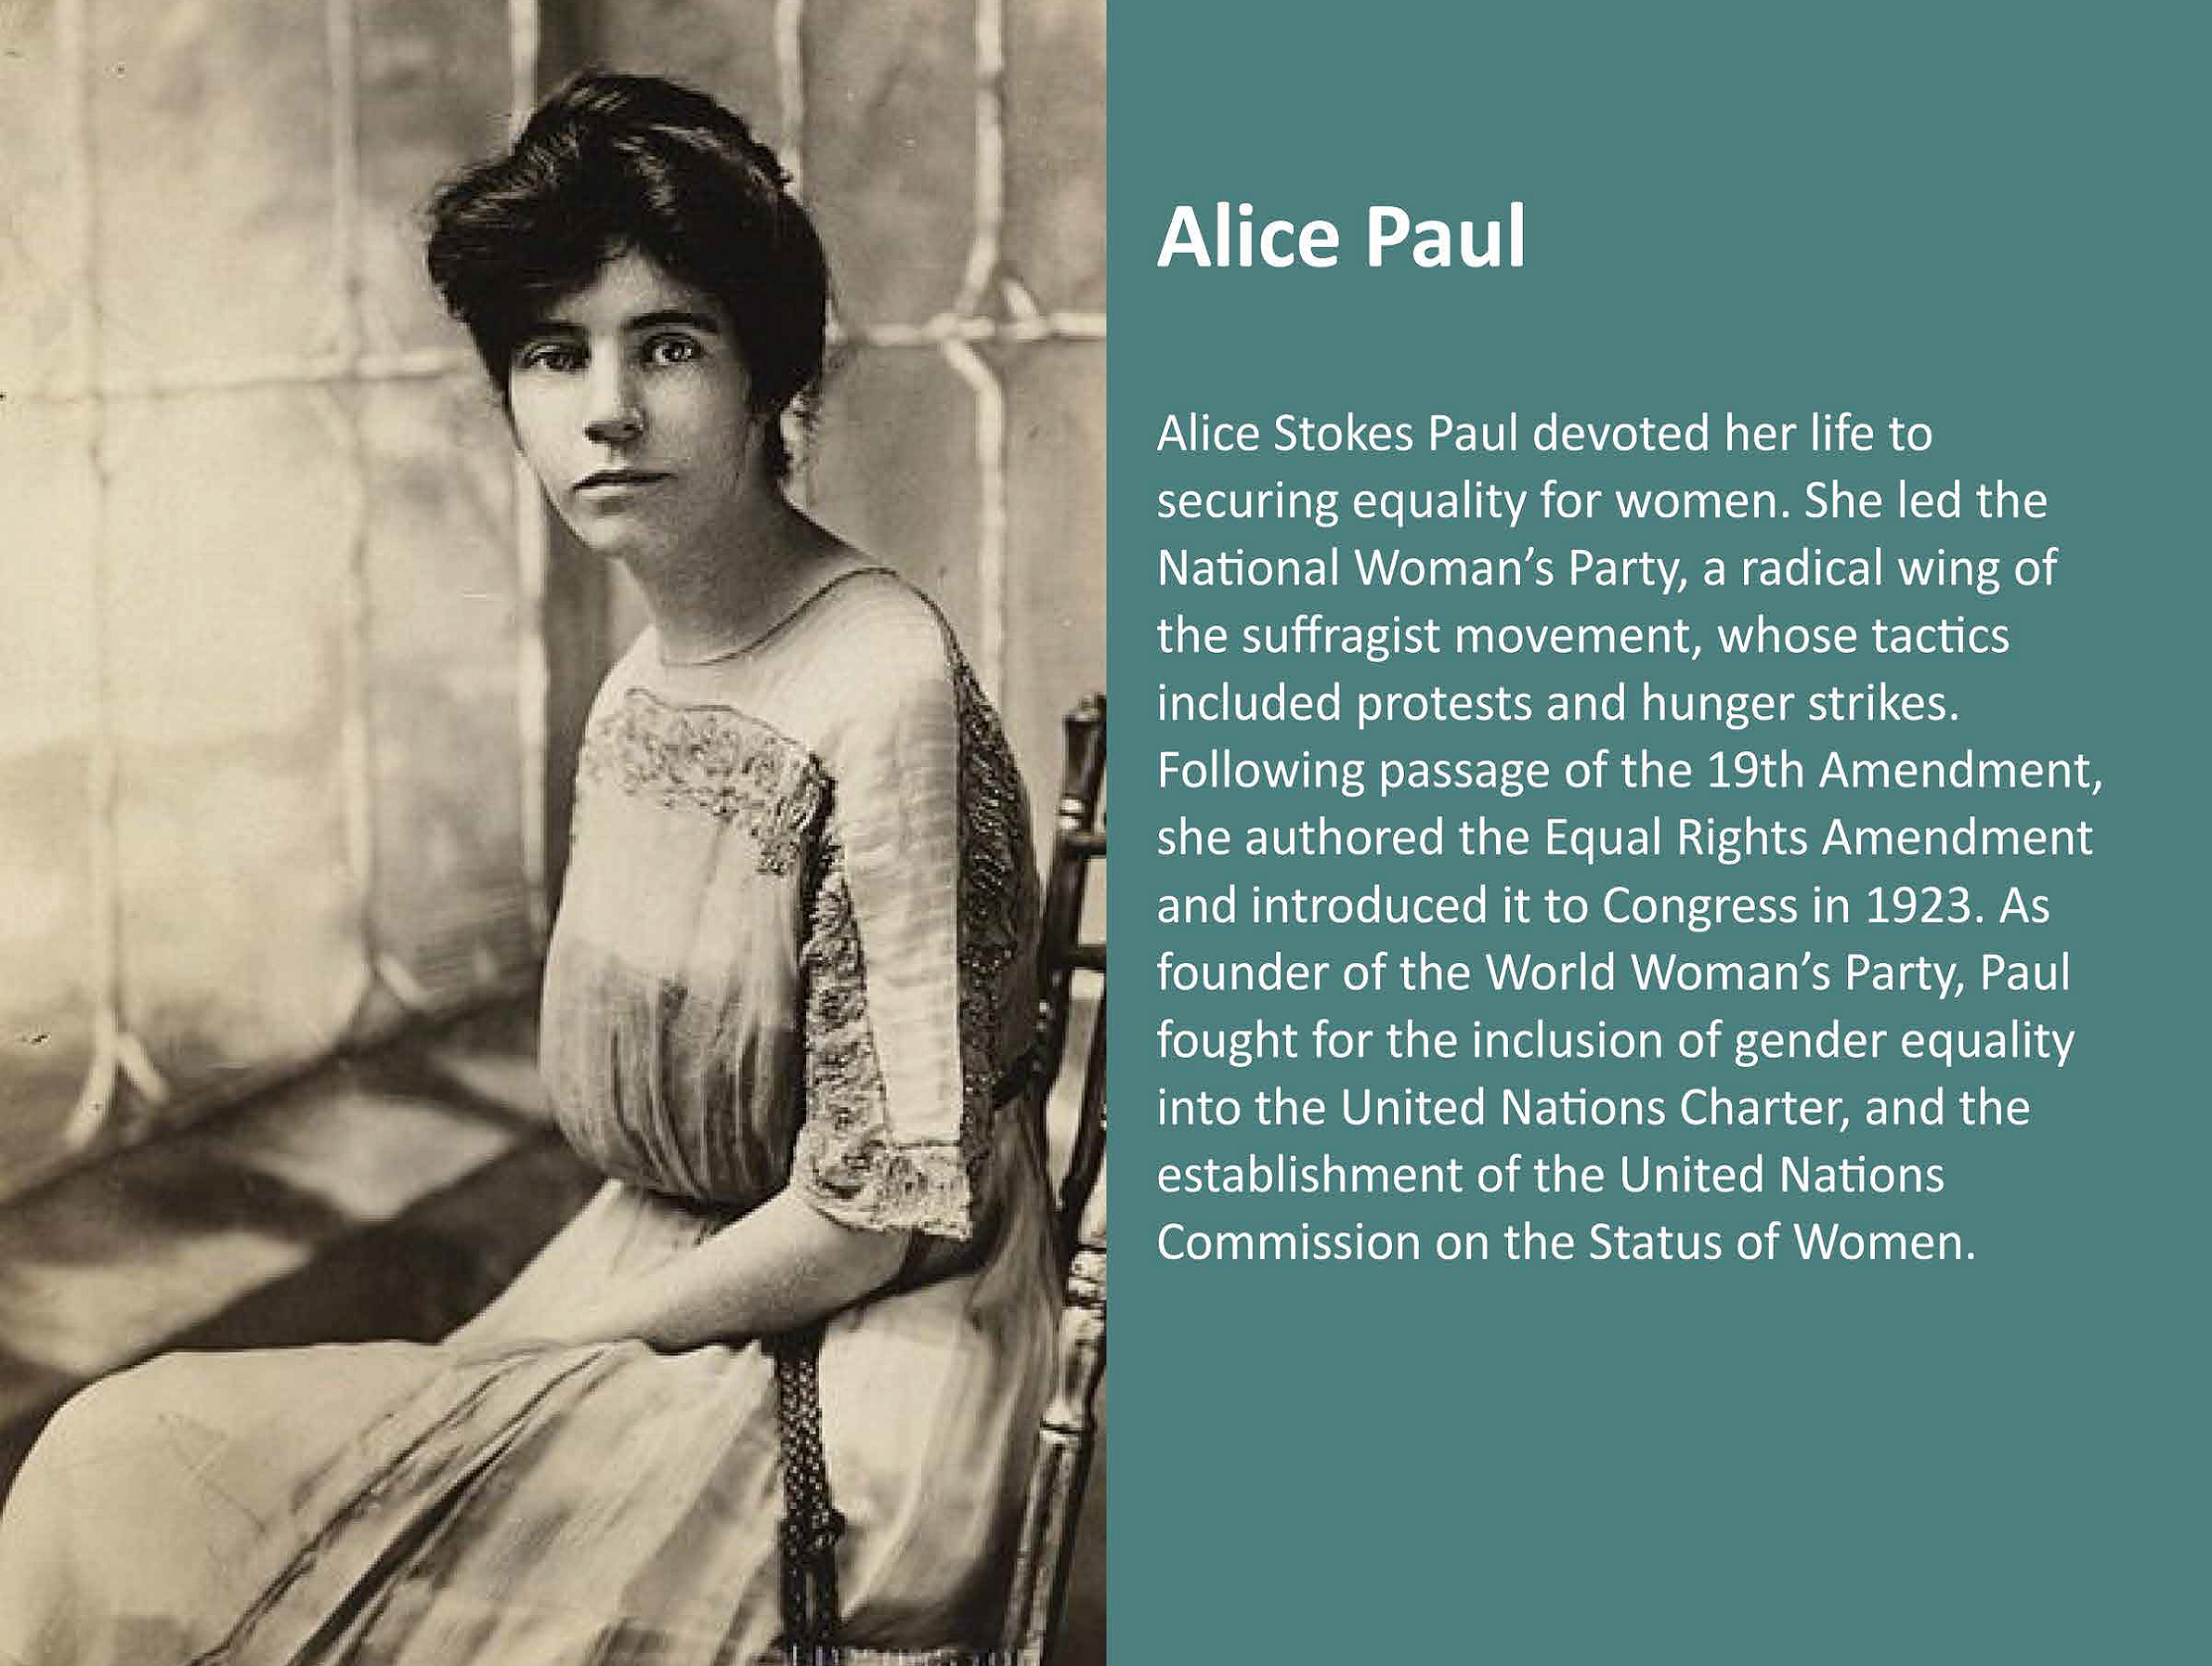 Alice Stokes Paul devoted her life to securing equality for women. She led the National Women's Party, a radical wing of the suffragist movement, whose tactics included protests and hunger strikes. Following passage of the 19th Amendment, she authored the Equal Rights Amendment and introduced it to Congress in 1923. As founder of the World Women's Party, Paul fought for the inclusion of gender equality into the United Nations Charter, and the establishment of the United Nations Commission on the Status of Women.